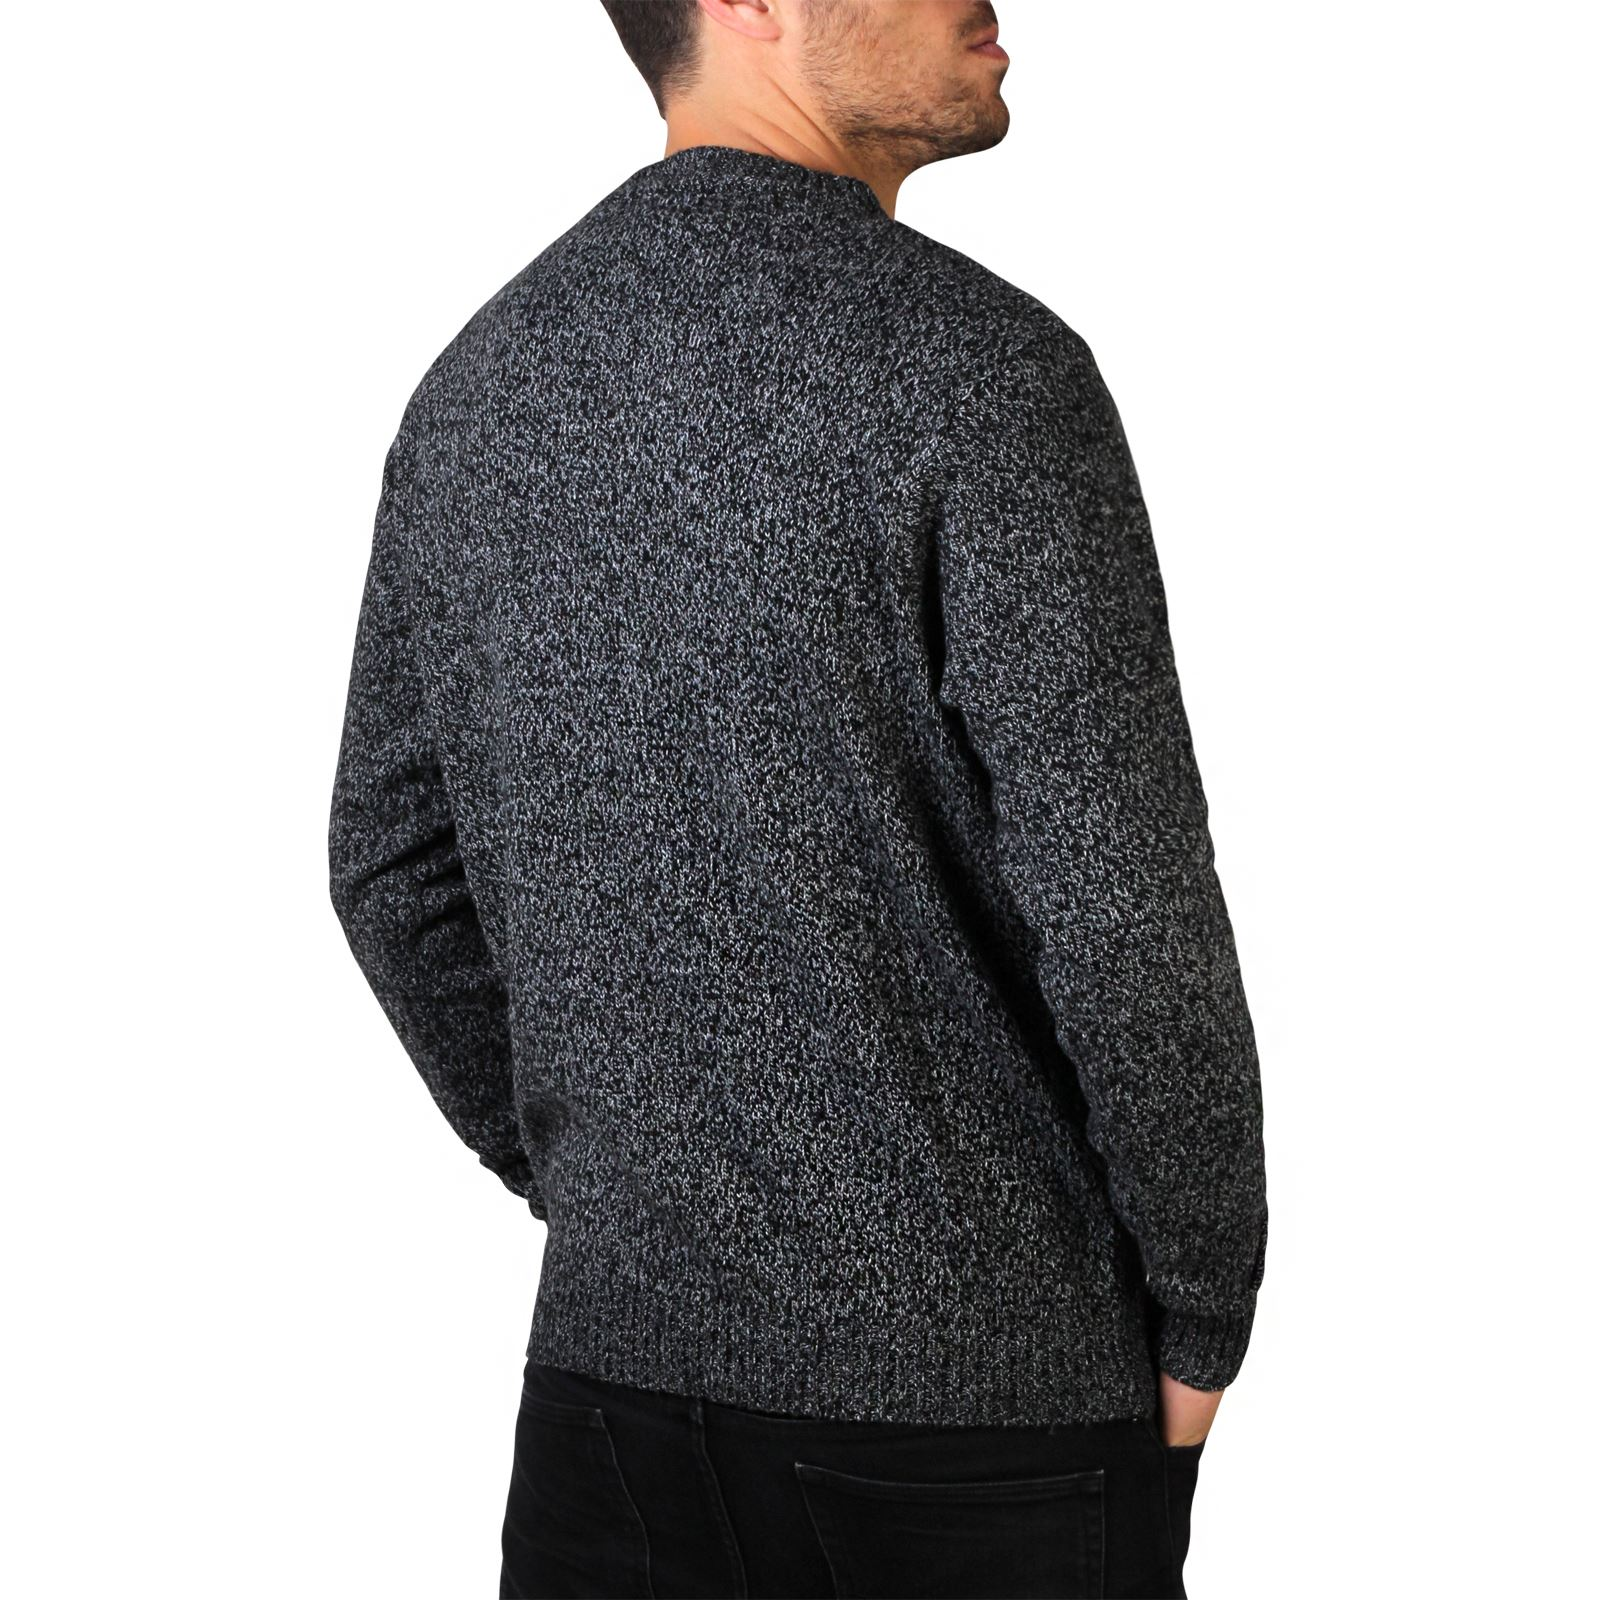 Mens-Soft-Knitted-Round-Crew-Neck-Warm-Jumper-Sweater-Grandad-Pullover-Top thumbnail 3